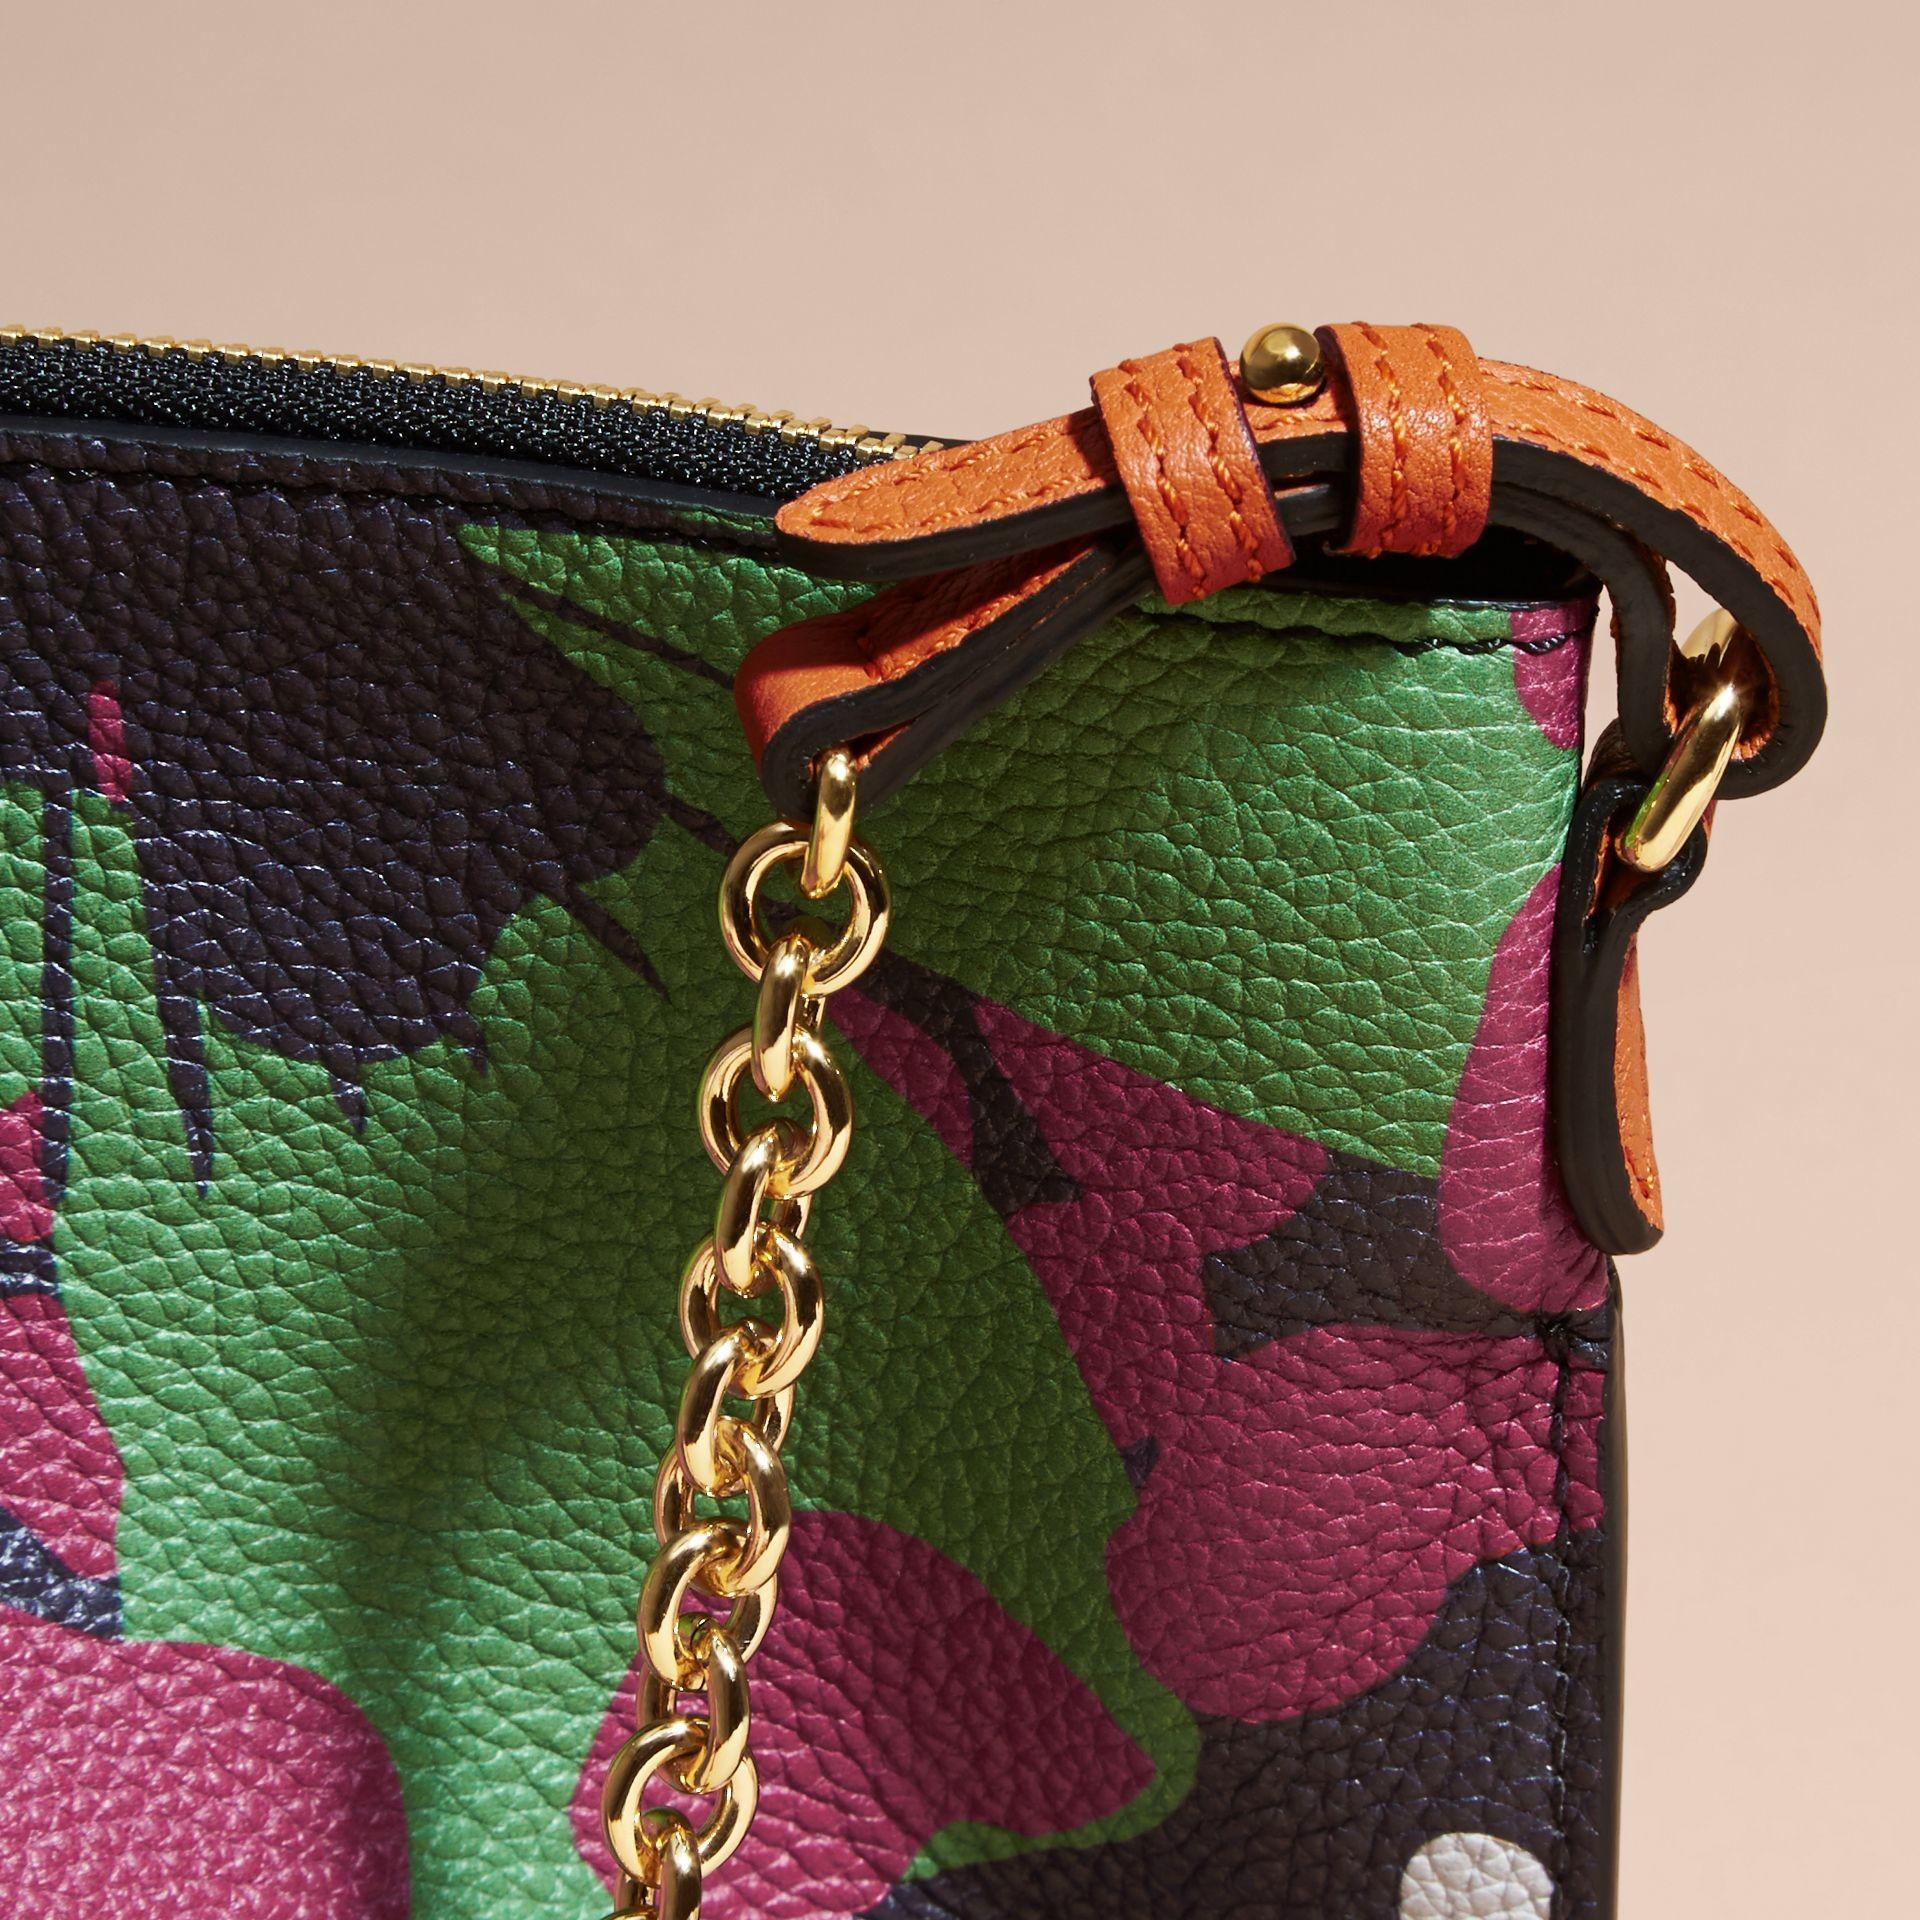 Floral Print Leather Clutch Bag Navy Burberry